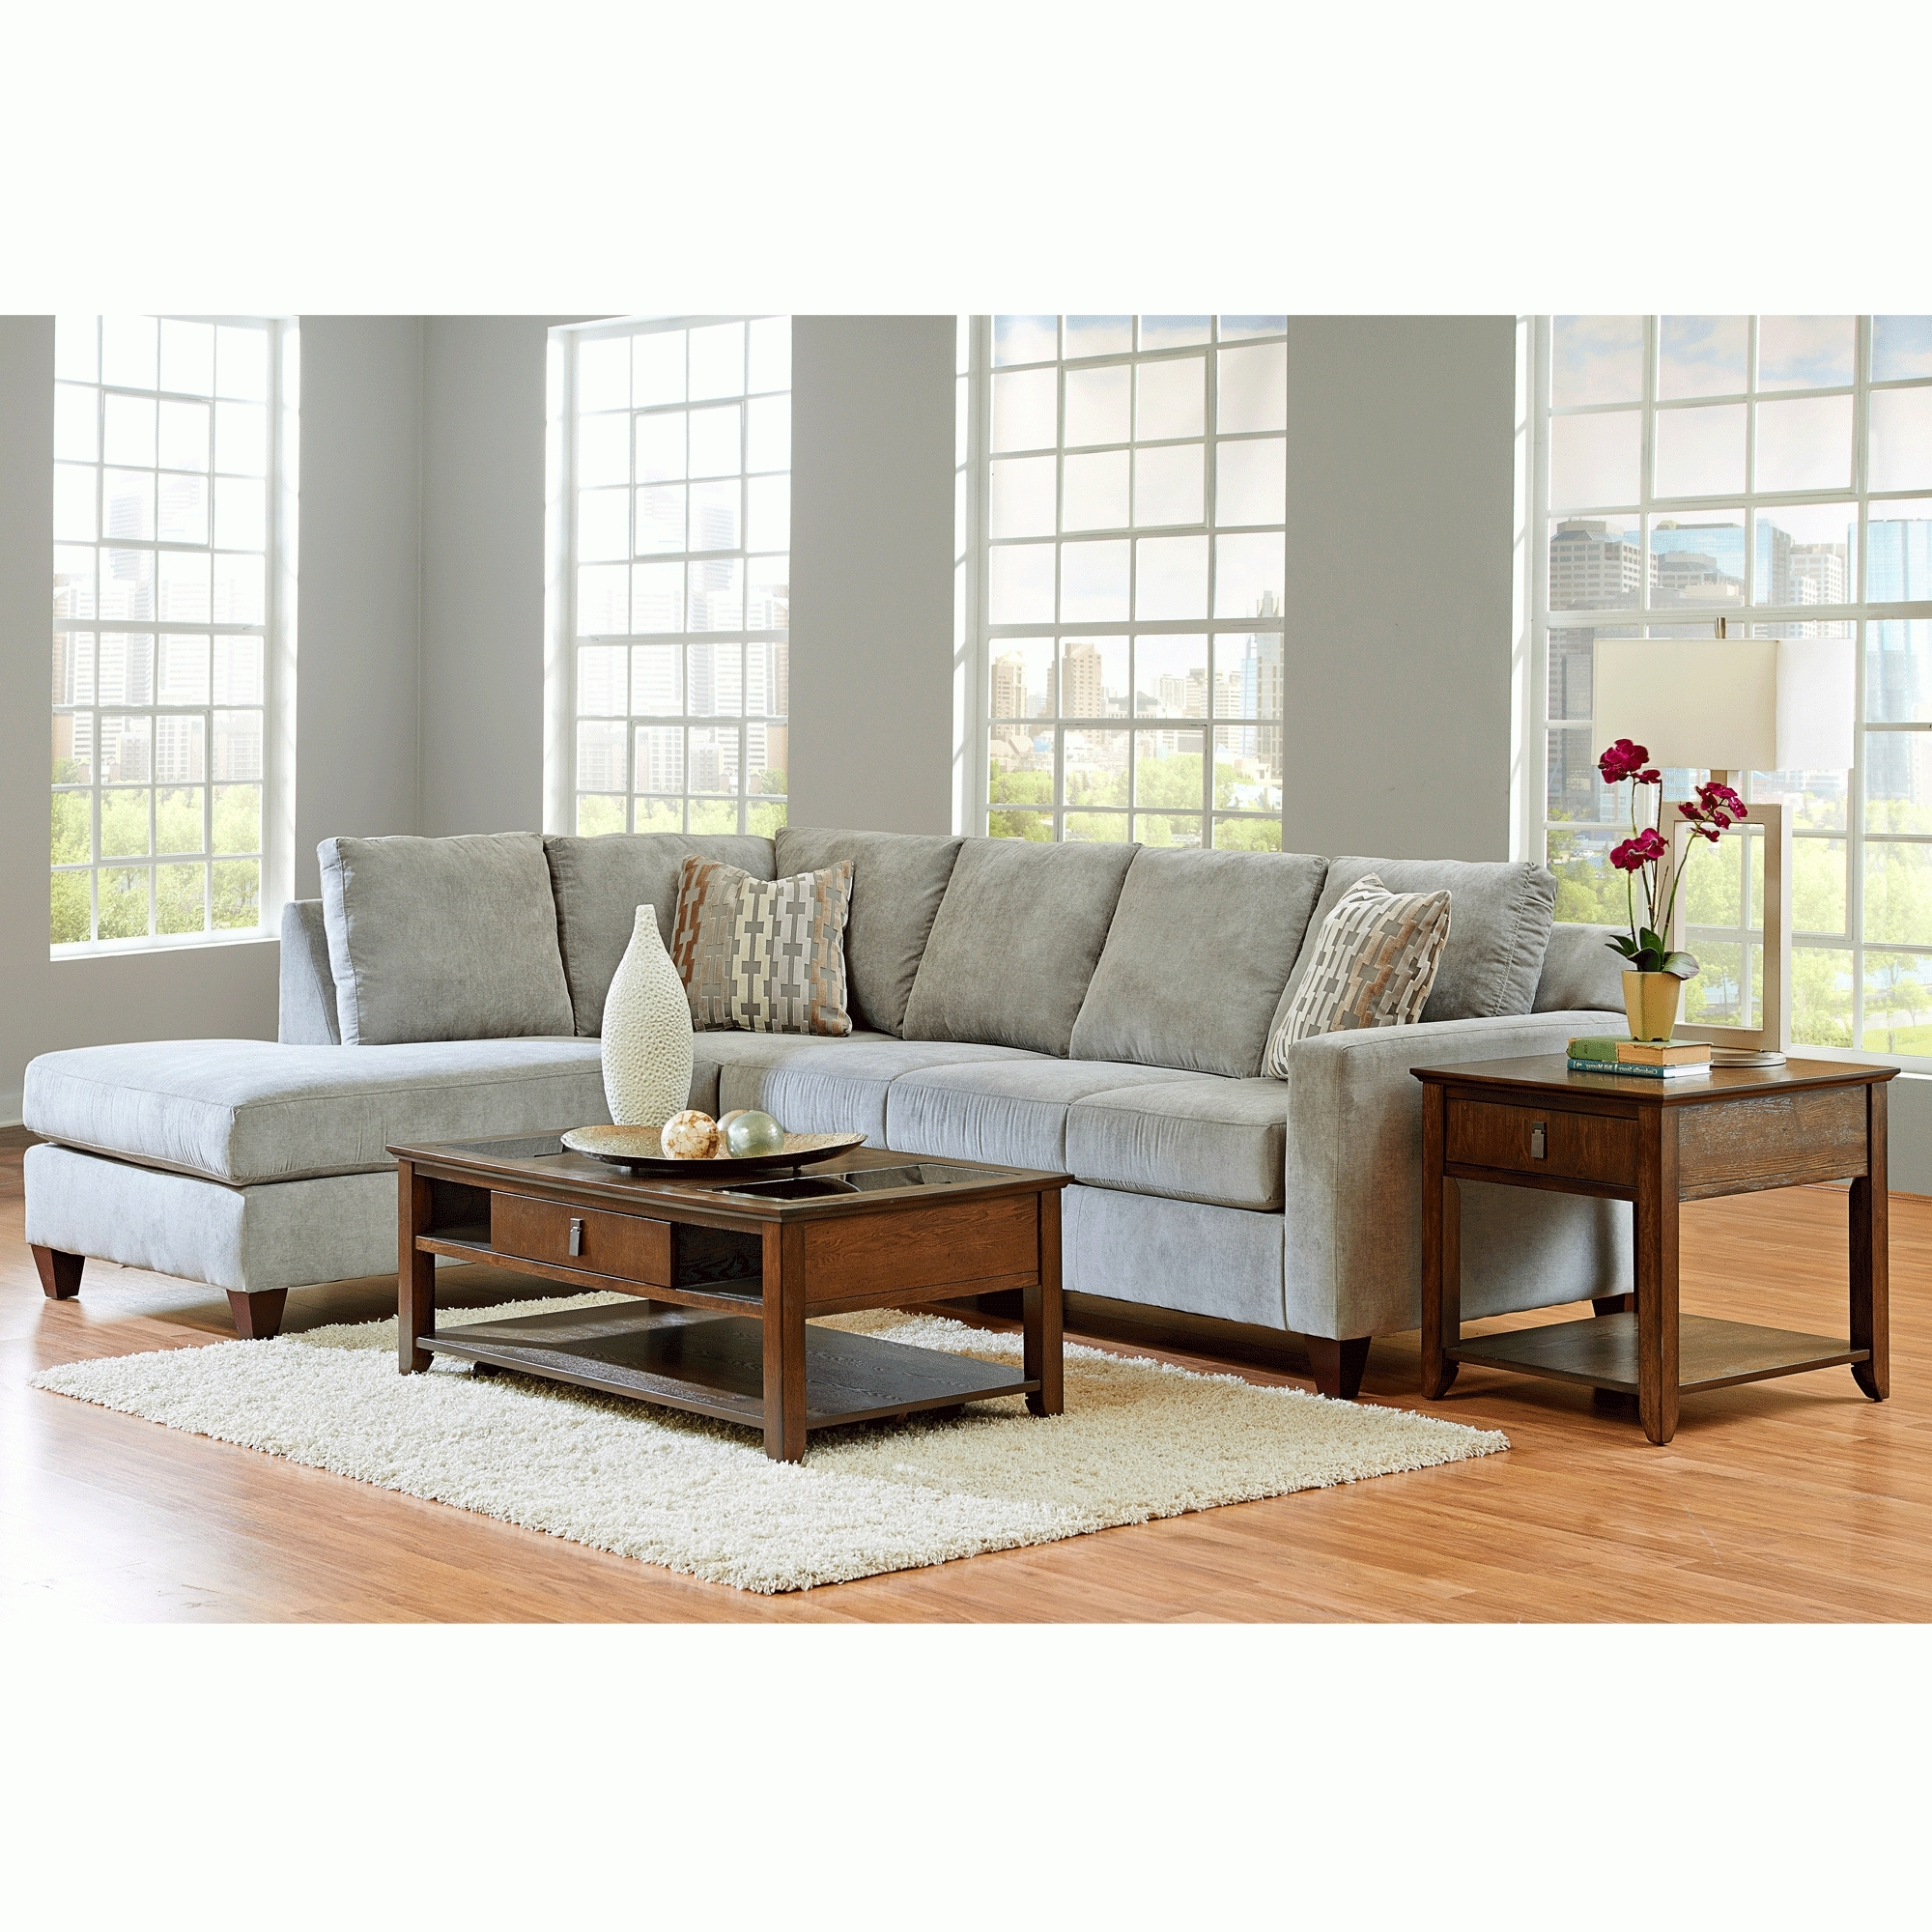 Sectional Couches – Bernie & Phyl's Furniture (View 13 of 15)